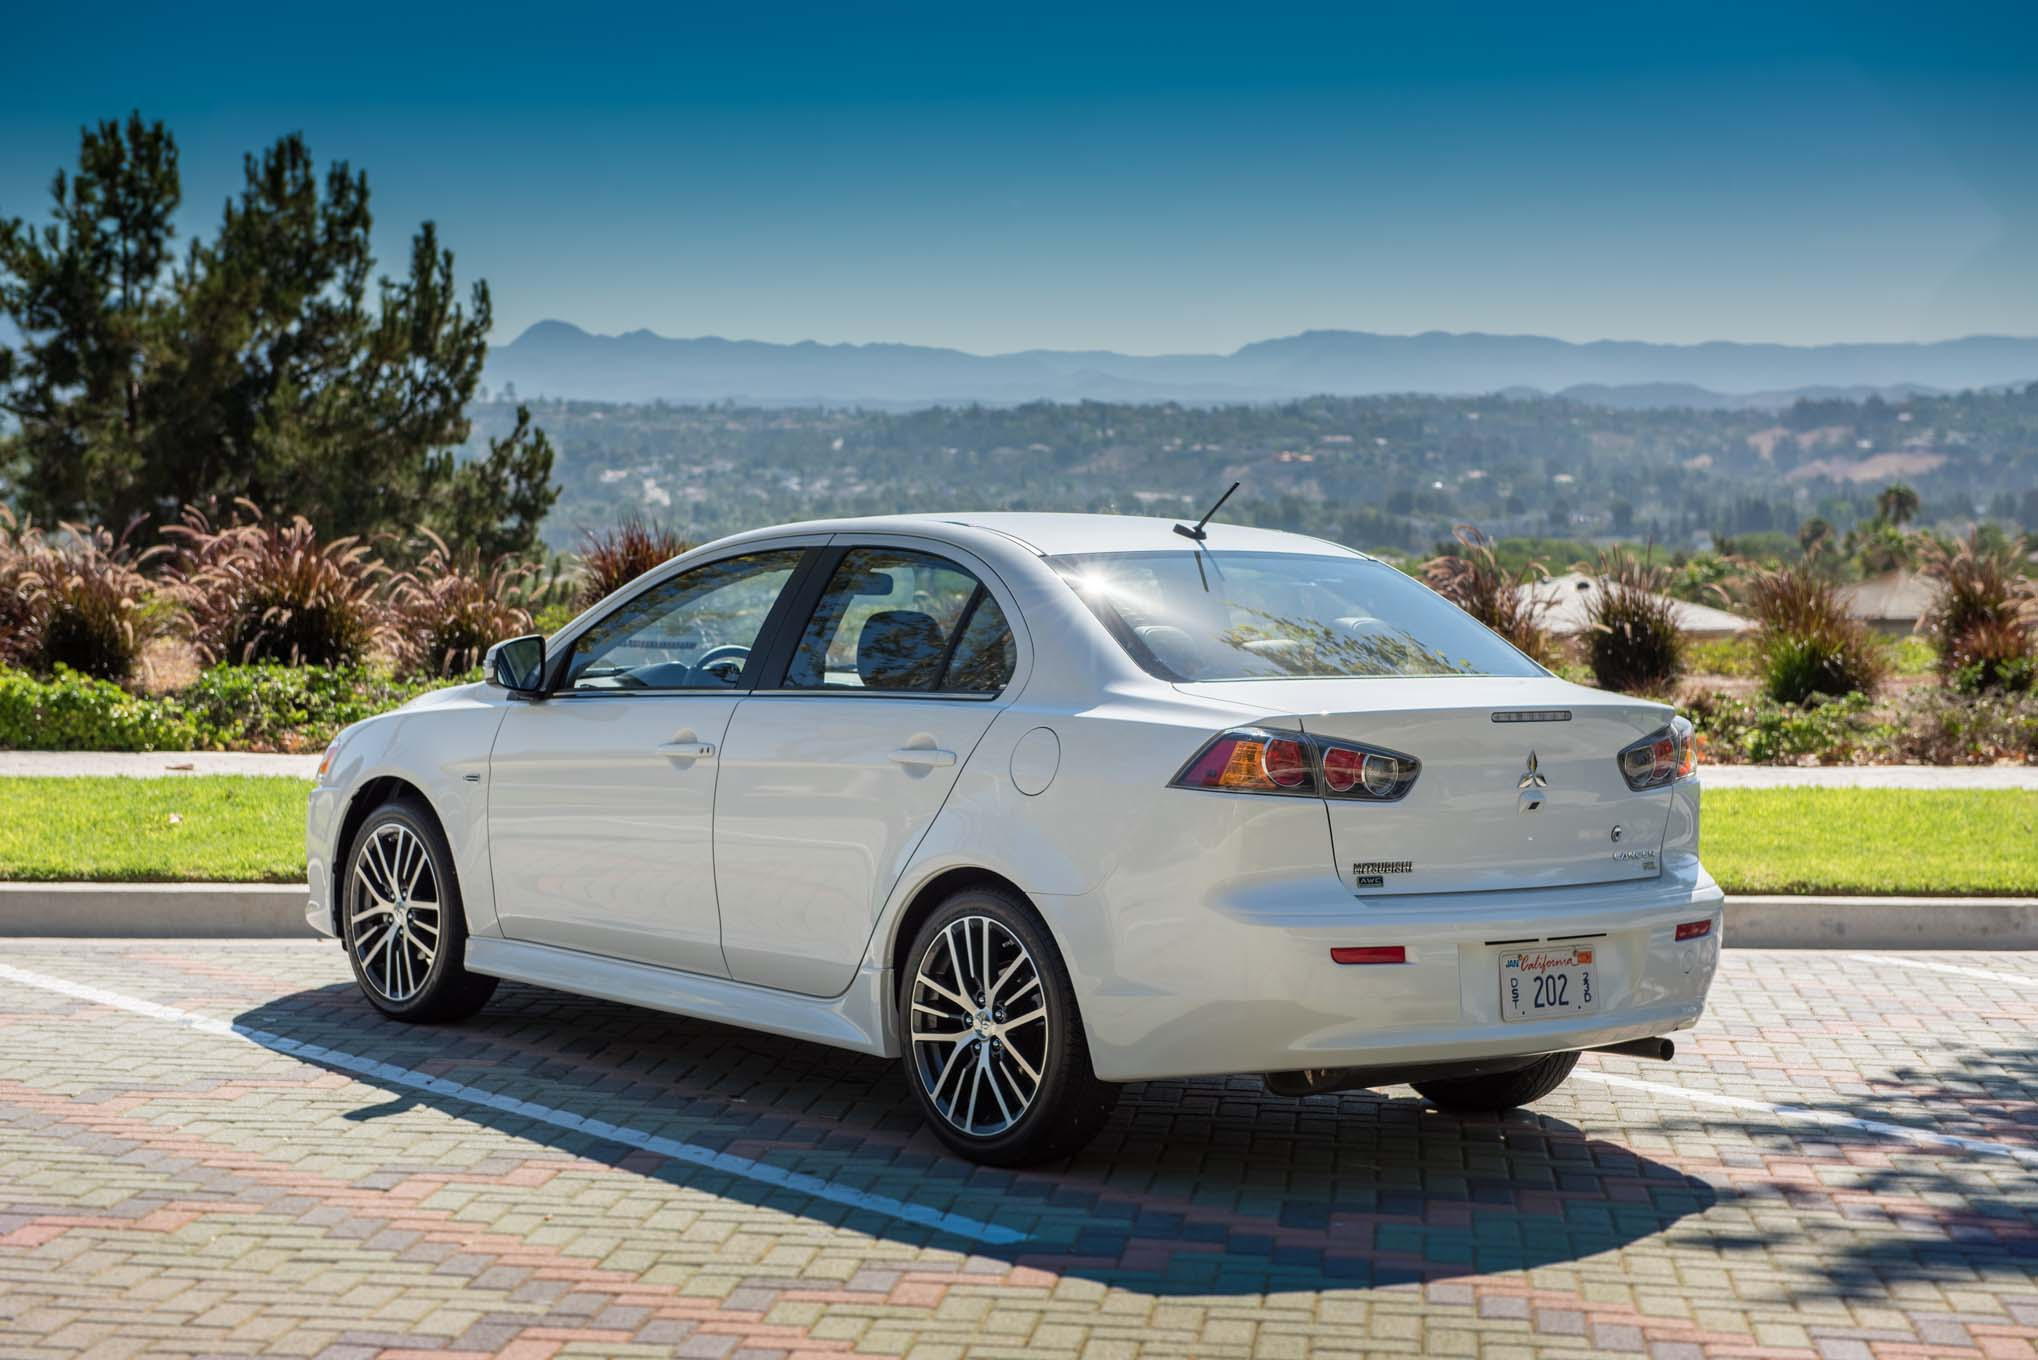 Mitsubishi Lancer 1 5 2014 Technical Specifications Interior And Exterior Photo